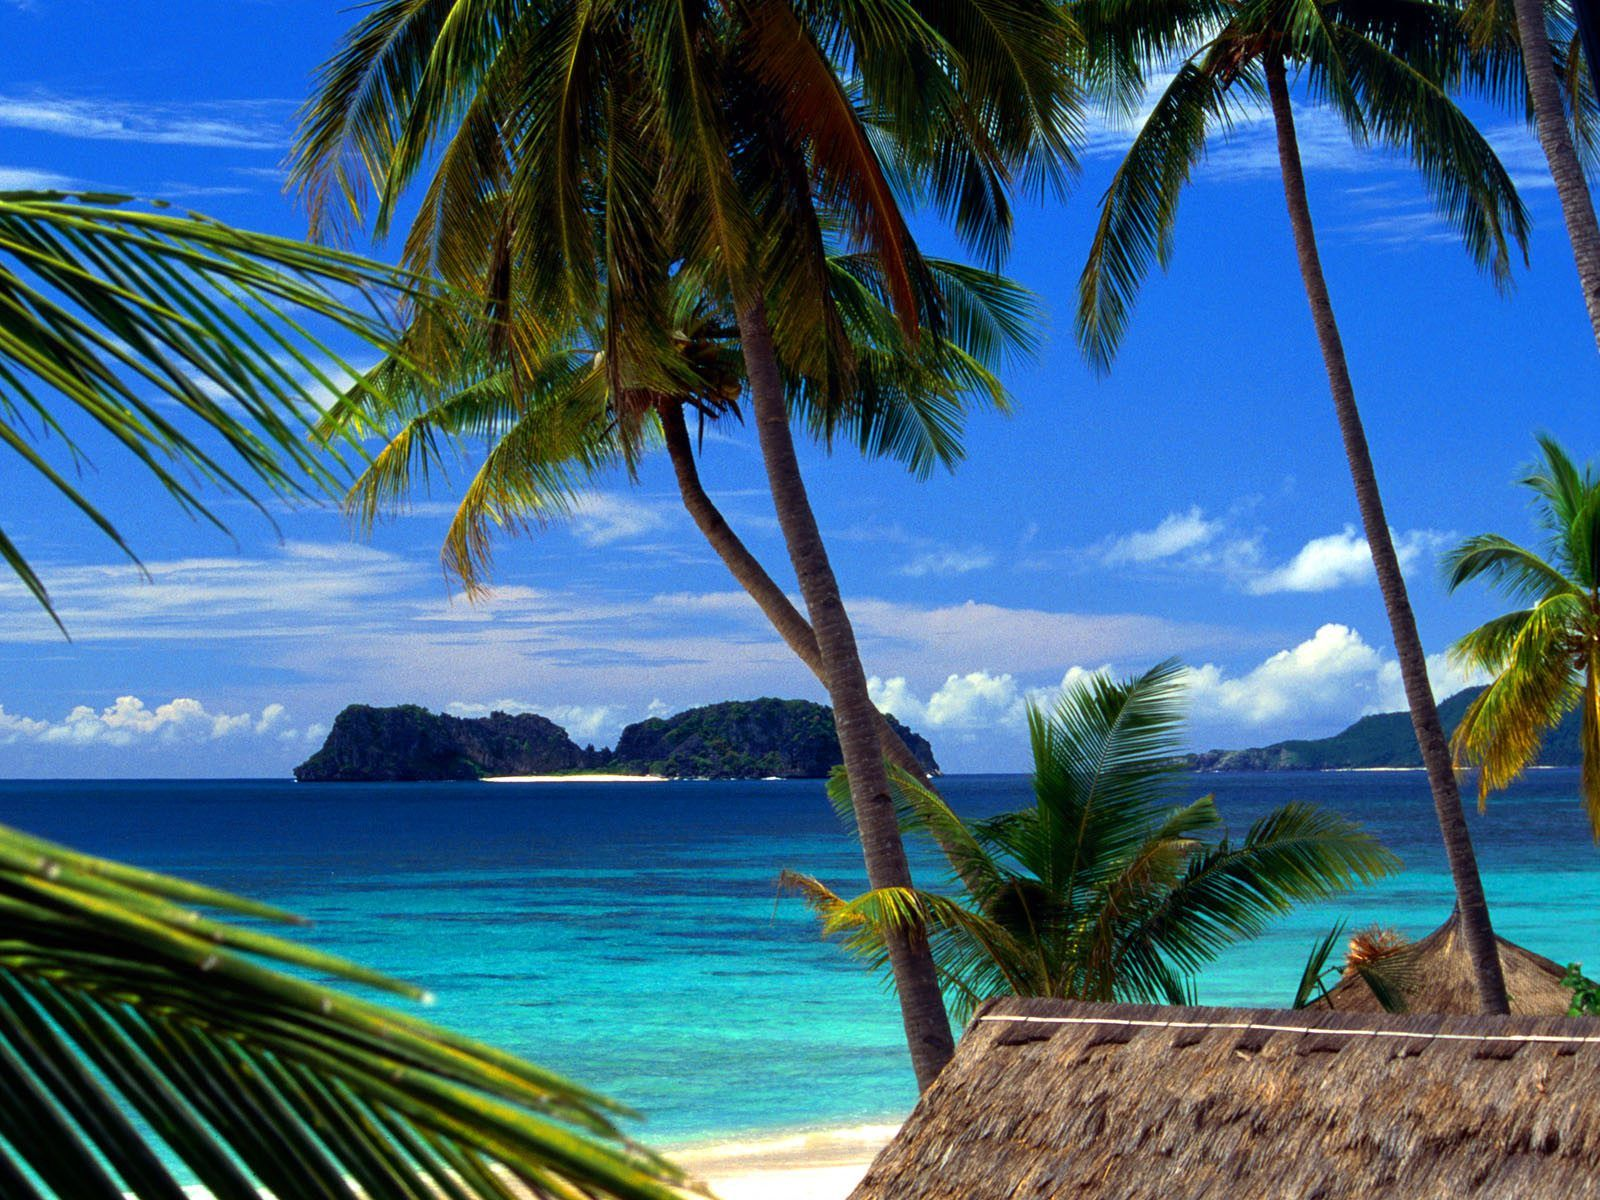 El Nido on the island of Palawan in the  Philippines . Wouldn't you like to be there now? We thought so.